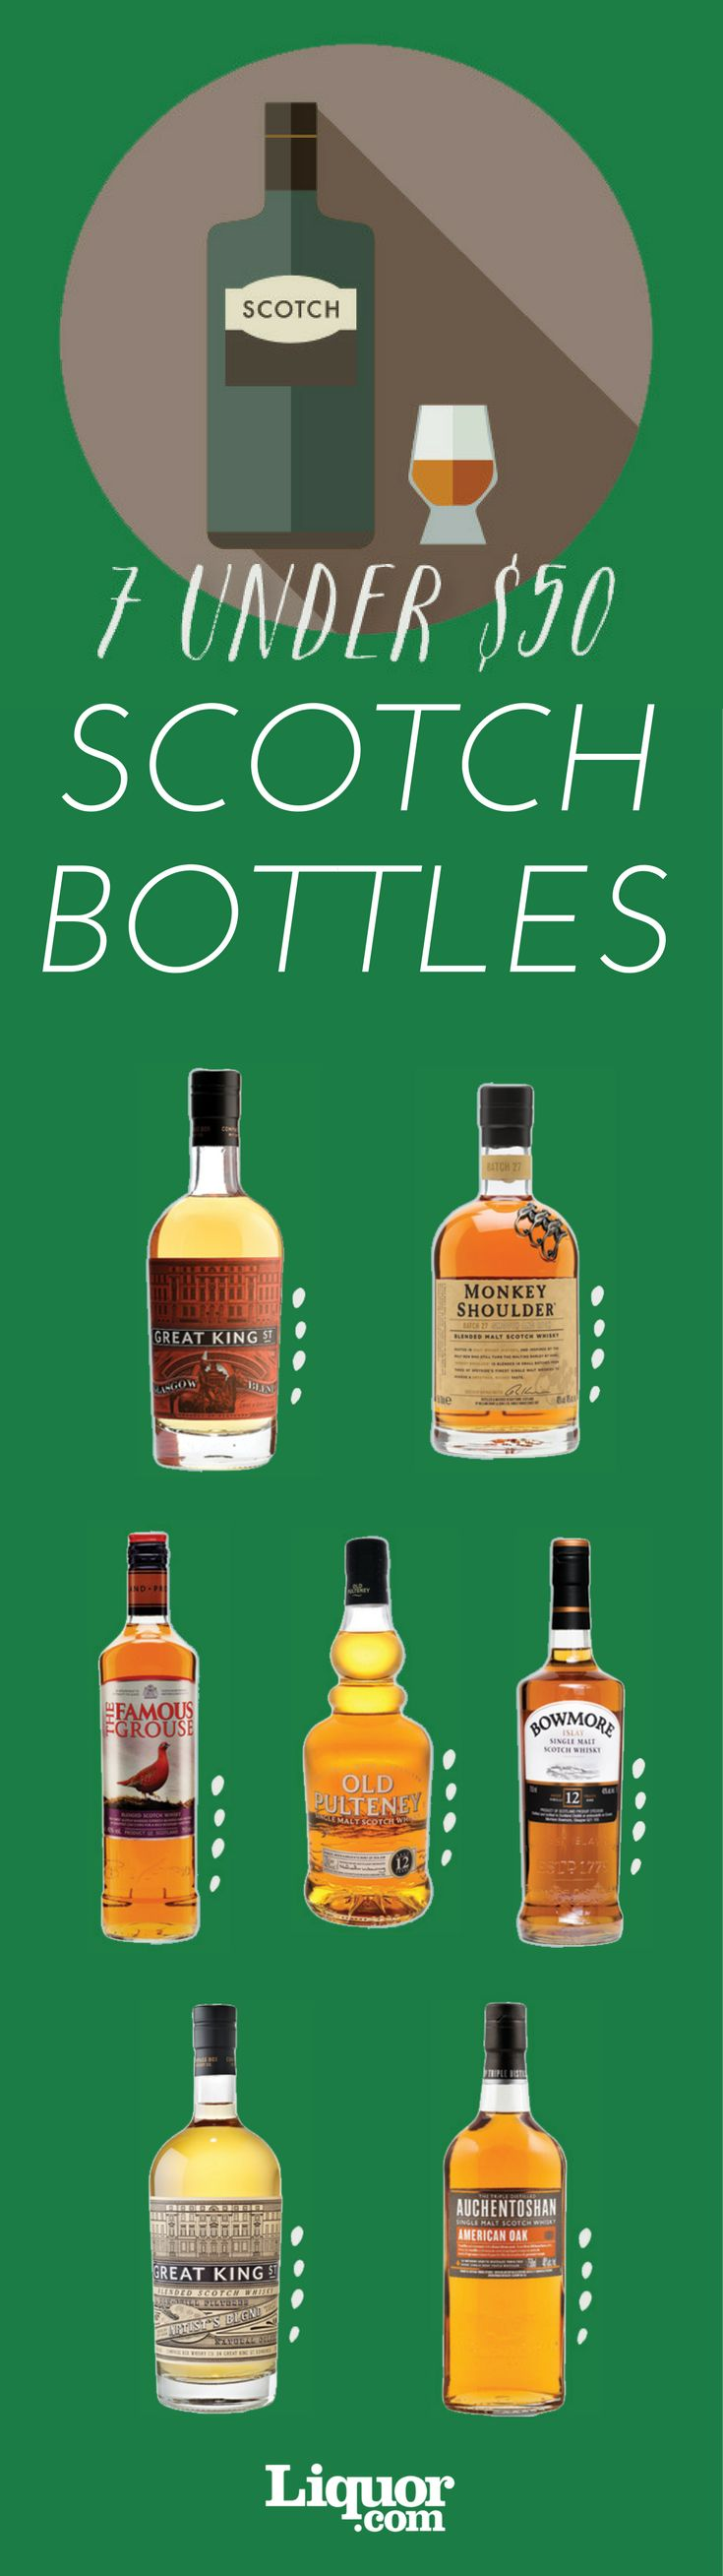 You know who knows best which bottles to buy for holiday gifting? The people who pour and sell drinks—that's who. For 2016, we asked dozens of top bartending and spirits industry professionals to tell us which #scotch bottles under $50 they love and why.